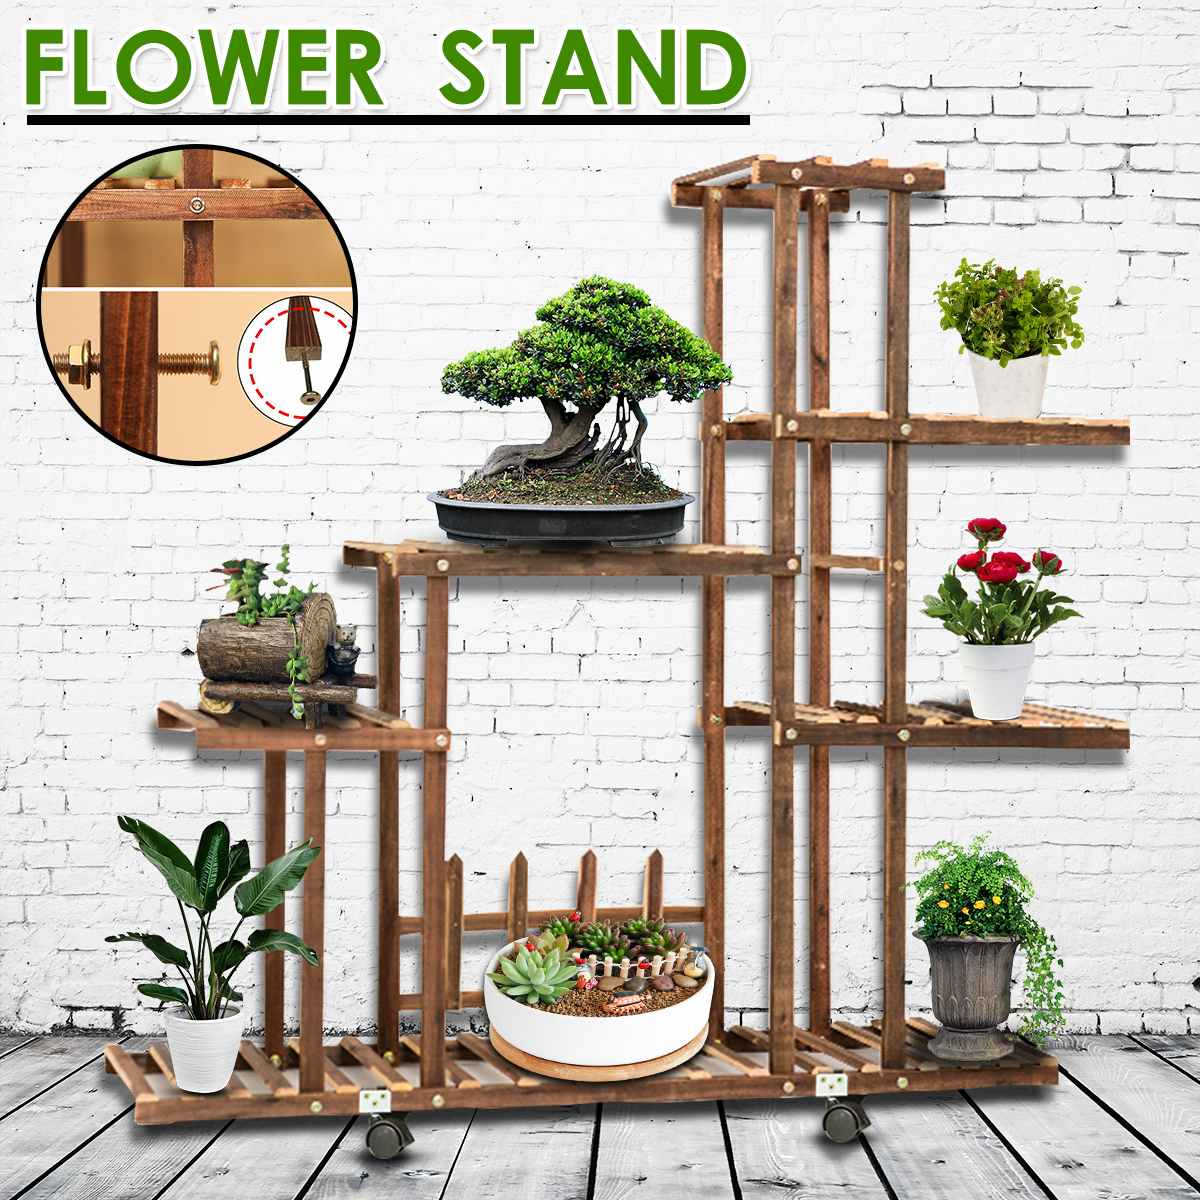 Wooden Wall Storage Rack Stand Shelf Holder Household Storage Stand Wood Storage Box Potted Plant Shelves Home DecorWooden Wall Storage Rack Stand Shelf Holder Household Storage Stand Wood Storage Box Potted Plant Shelves Home Decor